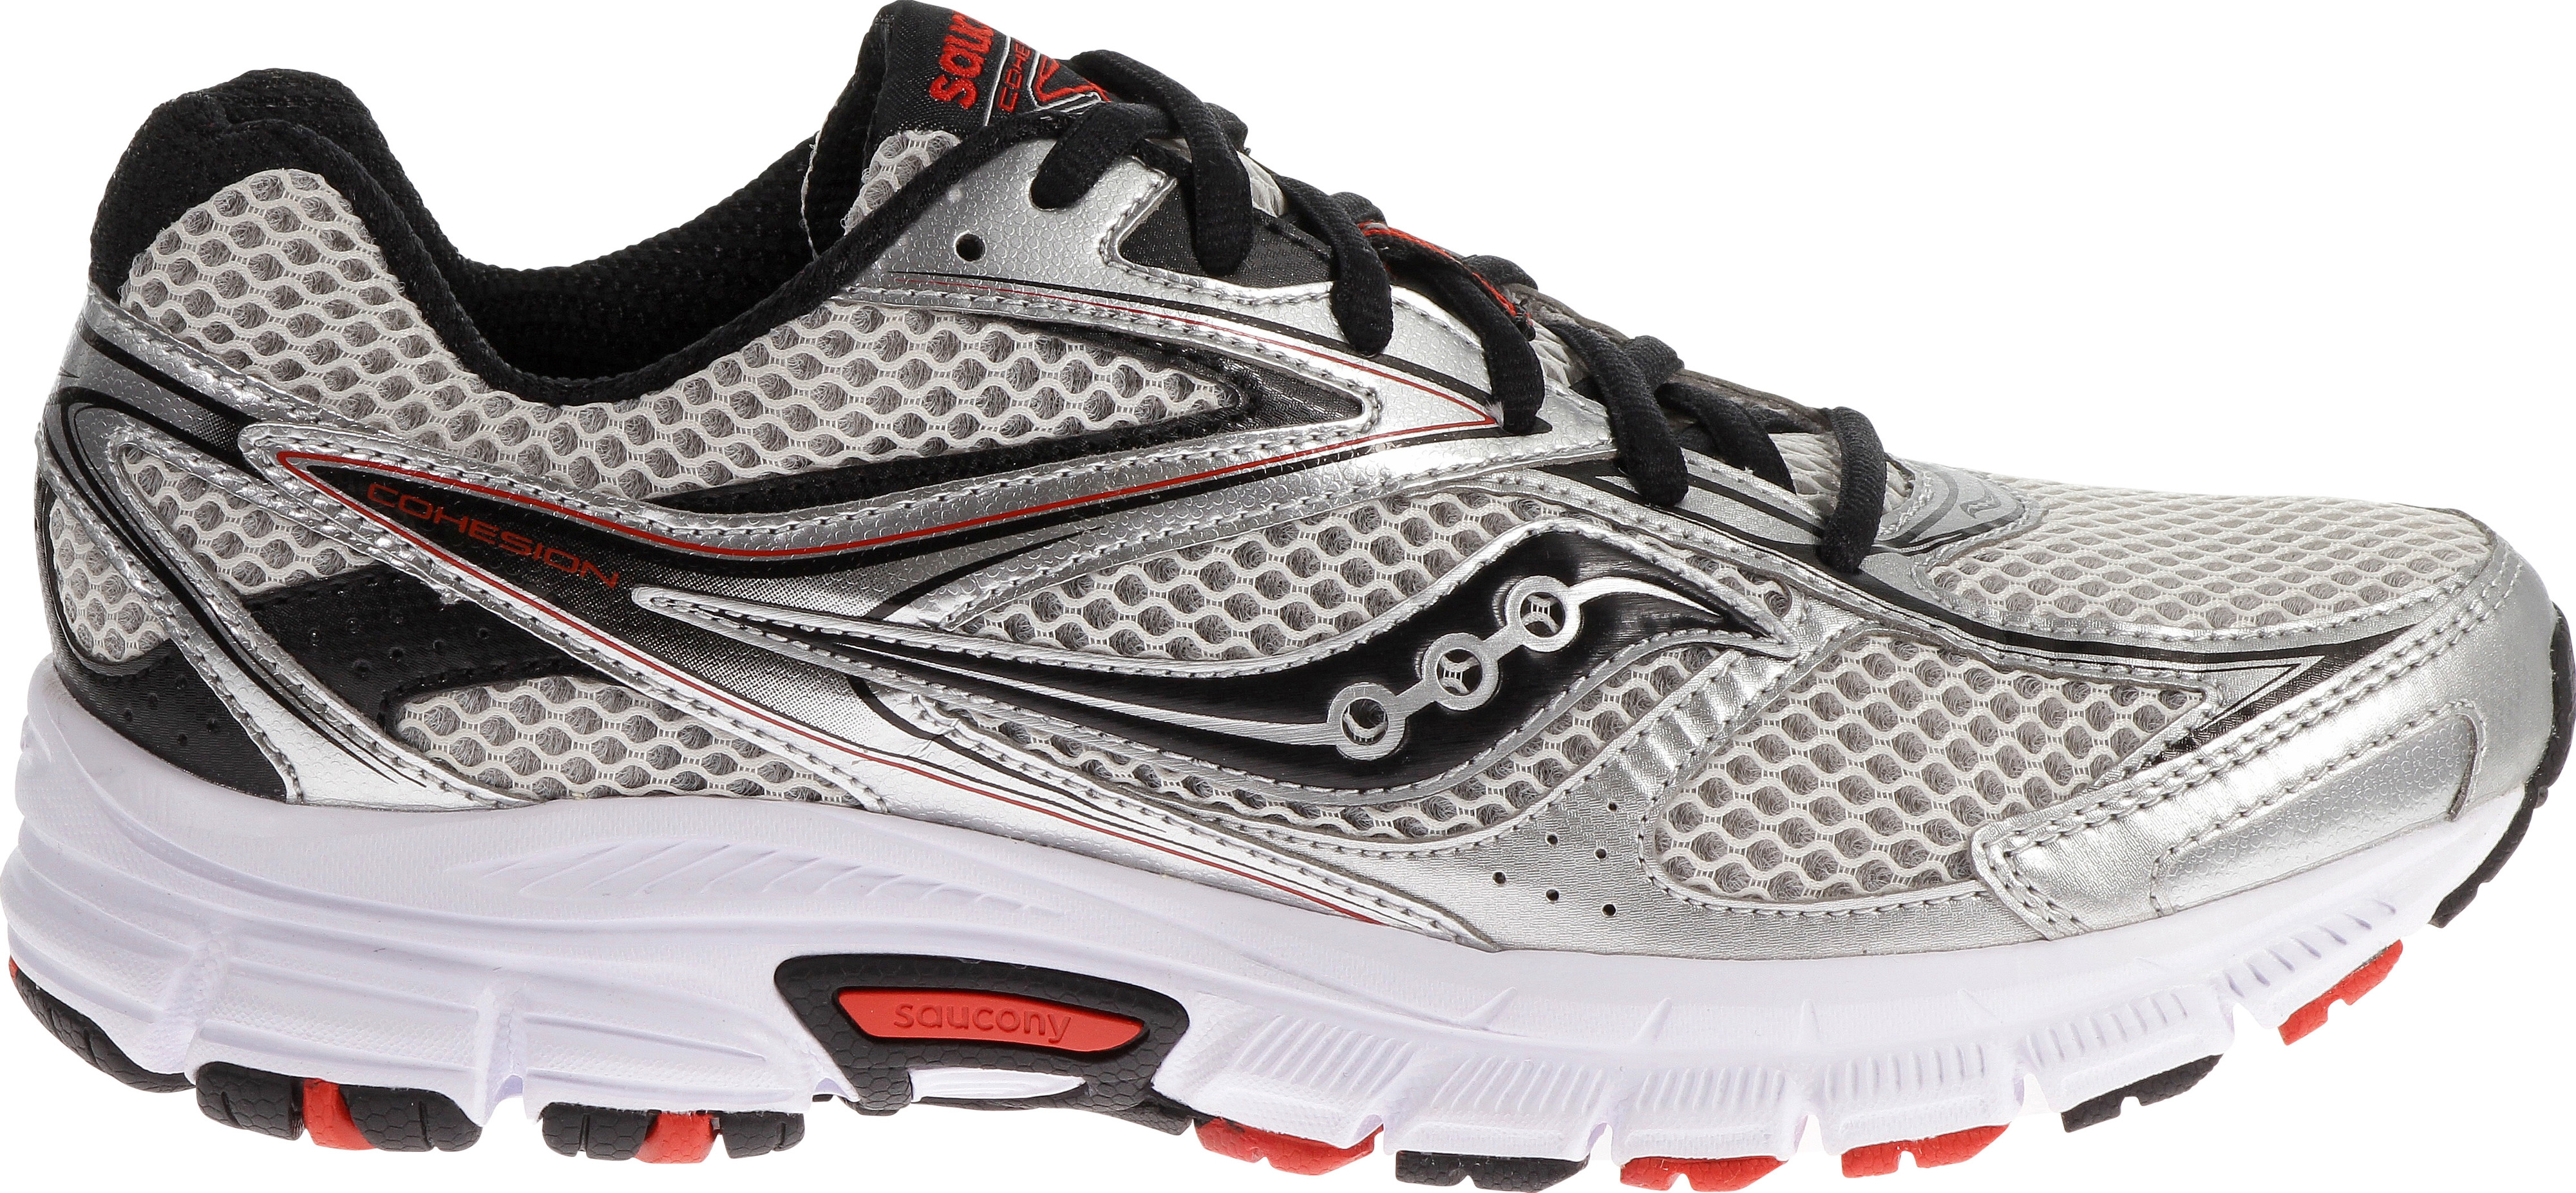 SCARPE SAUCONY GRID COHESION 8 RUNNING S25218-6 SIL/BLK/RED